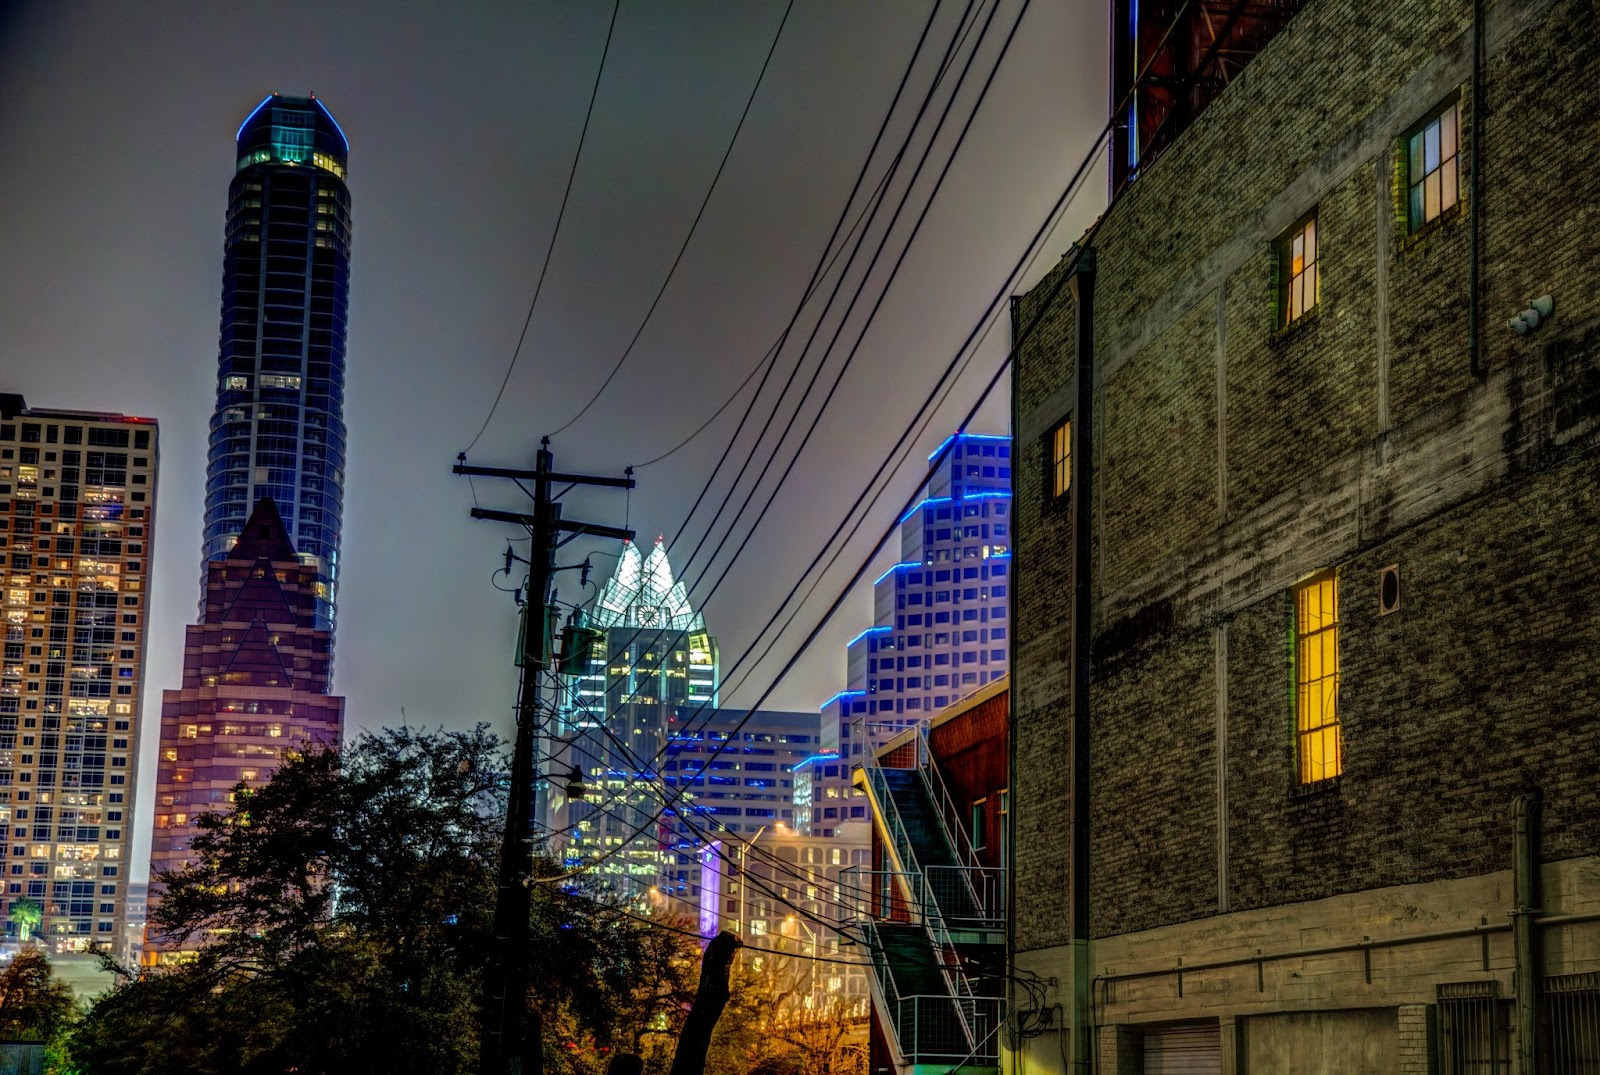 A back alley view of down town Austin Texas after dark - HDR